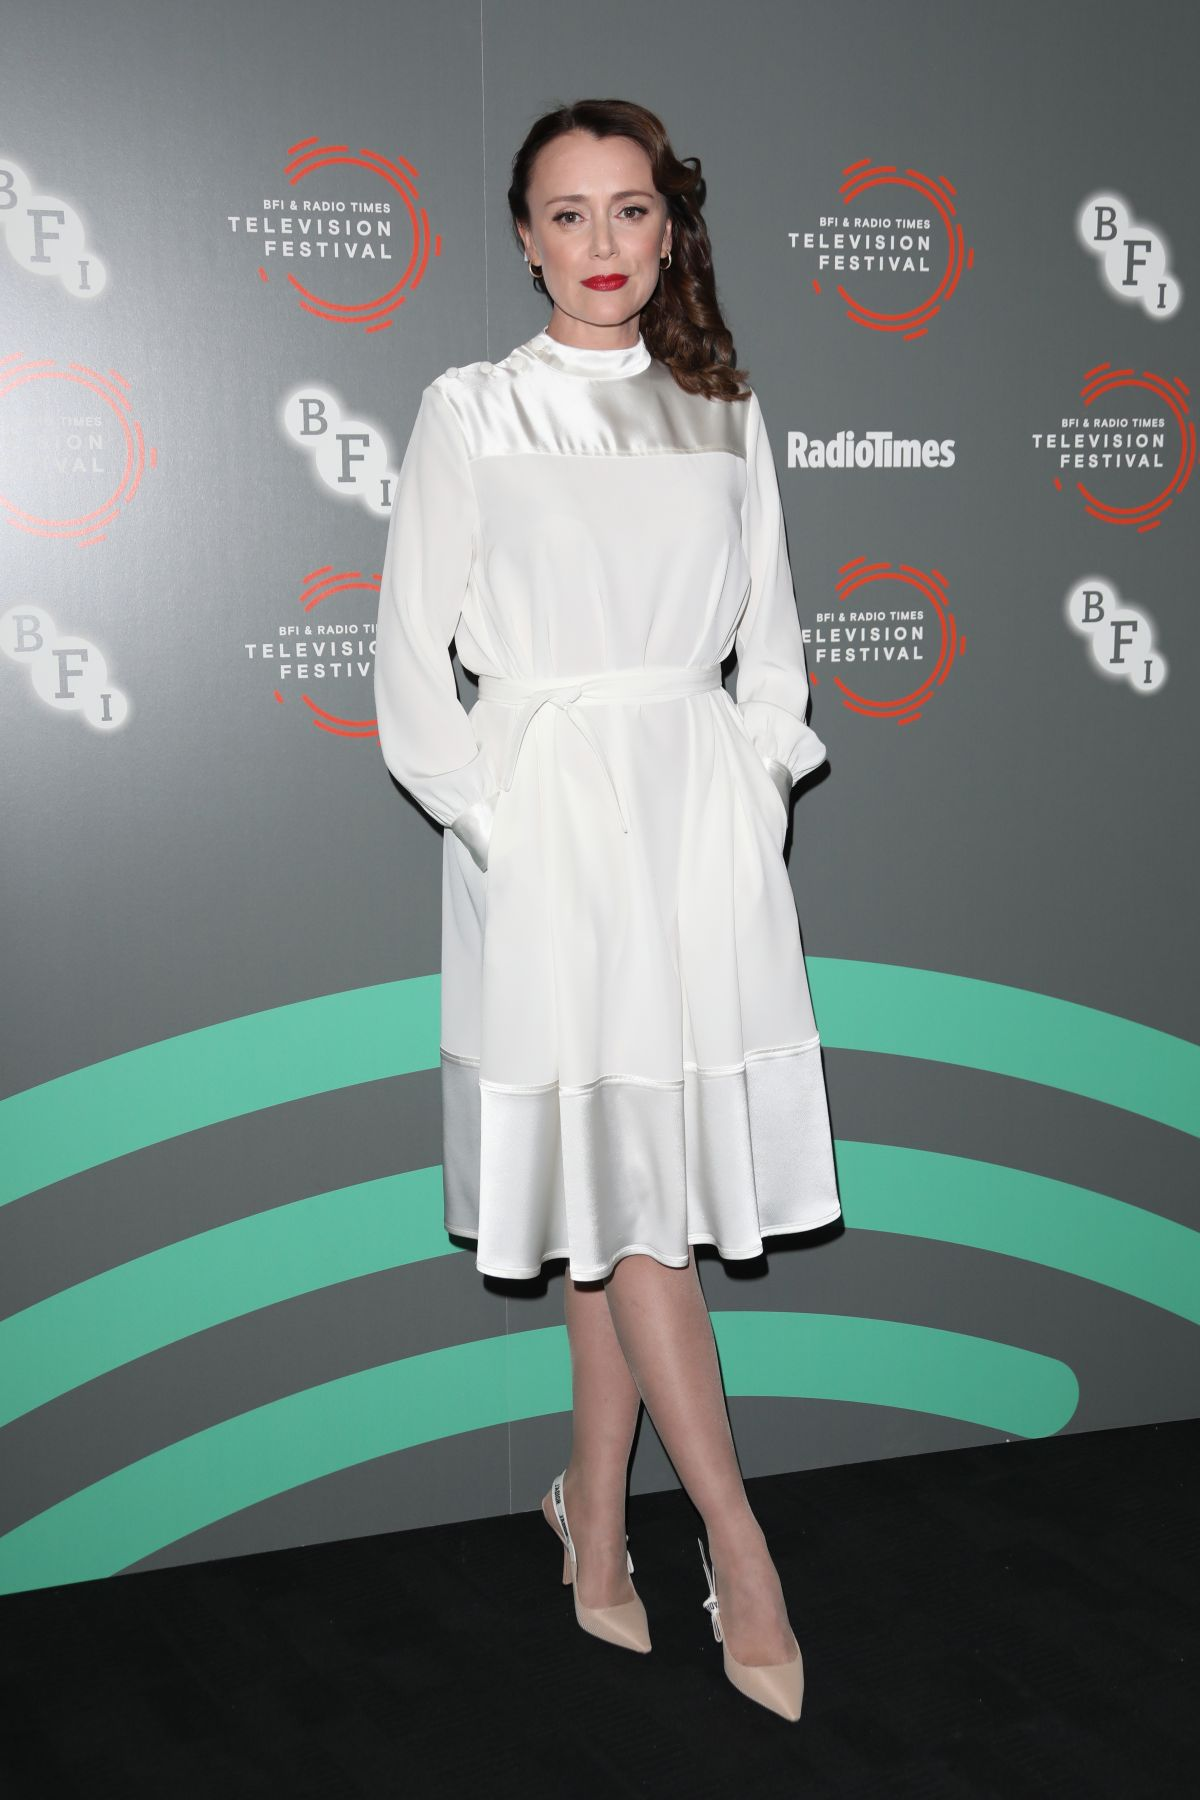 Keeley Hawes At Bfi And Radio Times Television Festival